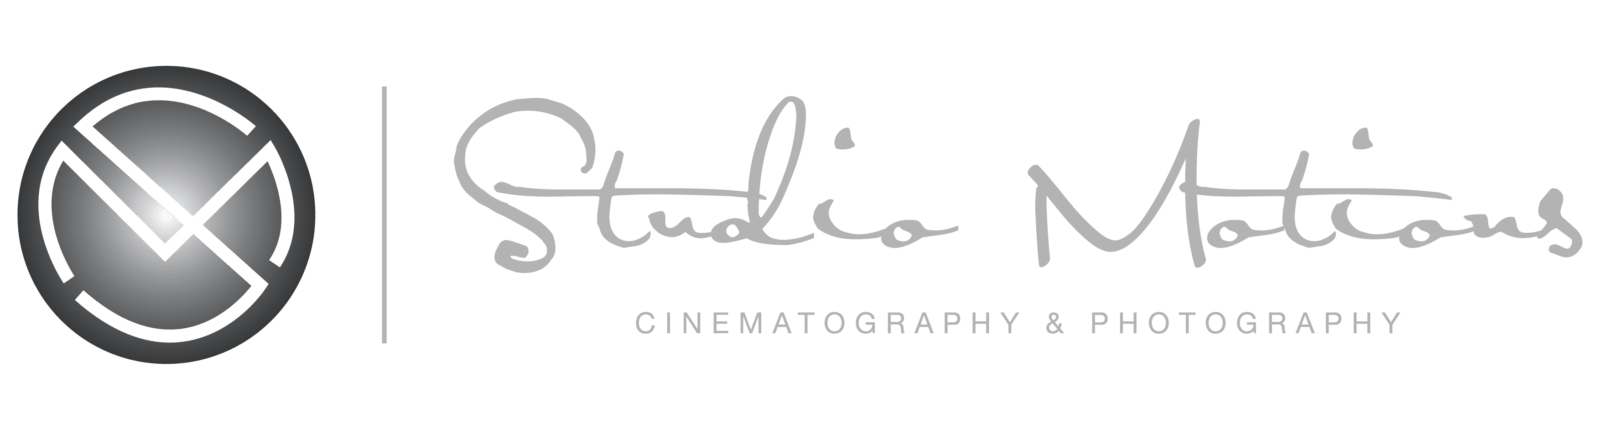 Asian Wedding Photography & Cinematography - Studio Motions